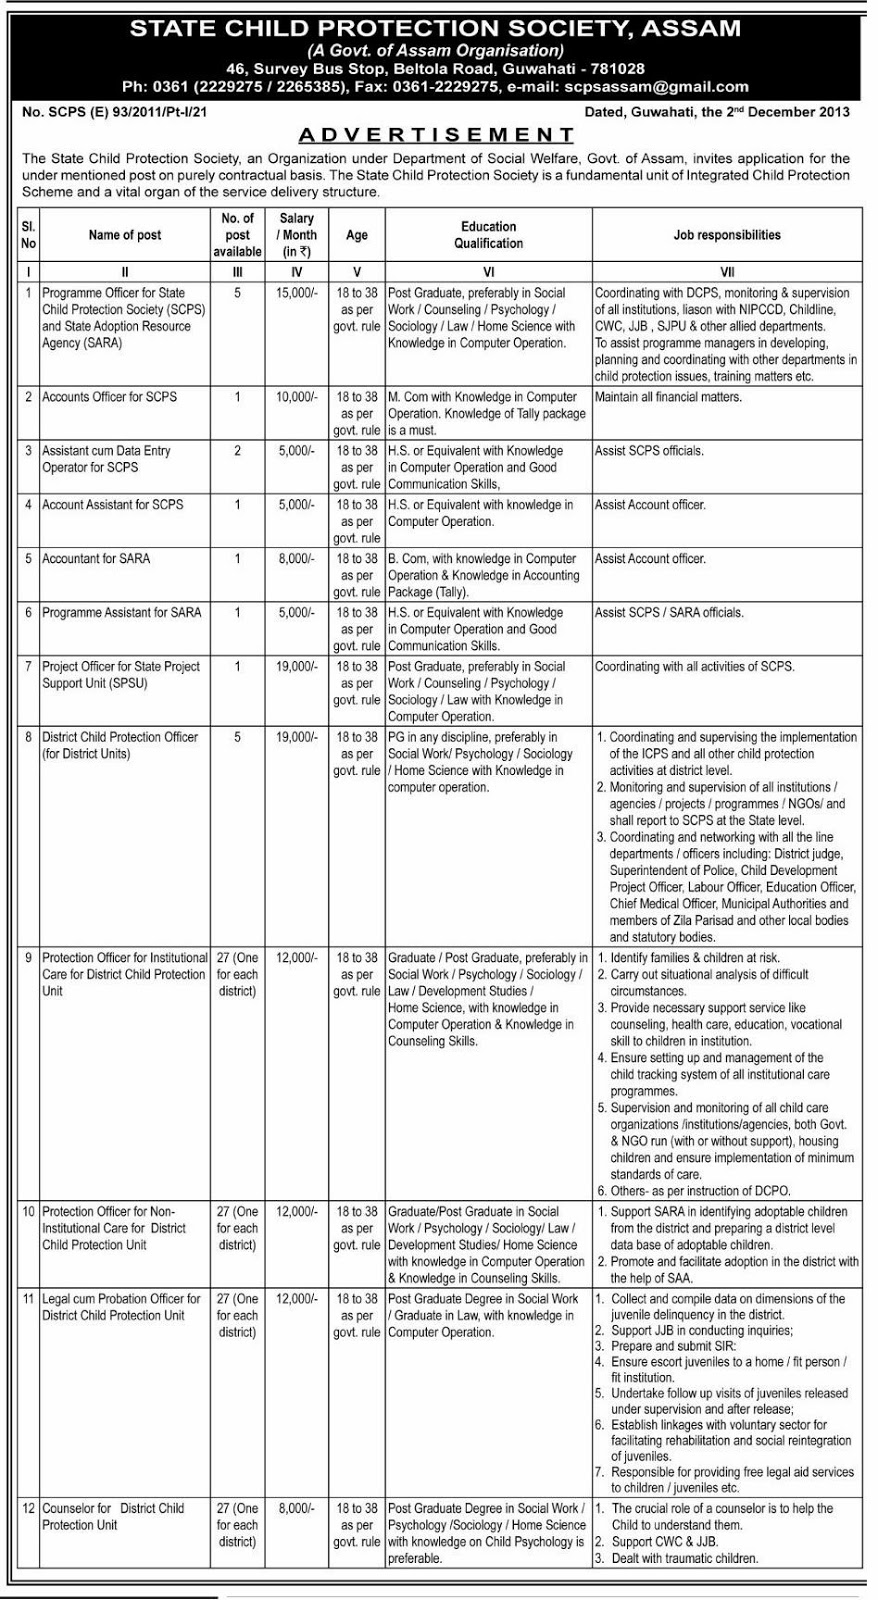 a place for govt jobs 327 nos programme officer accounts officer deo account assistant accountant programme assistant project officer district child protection officer